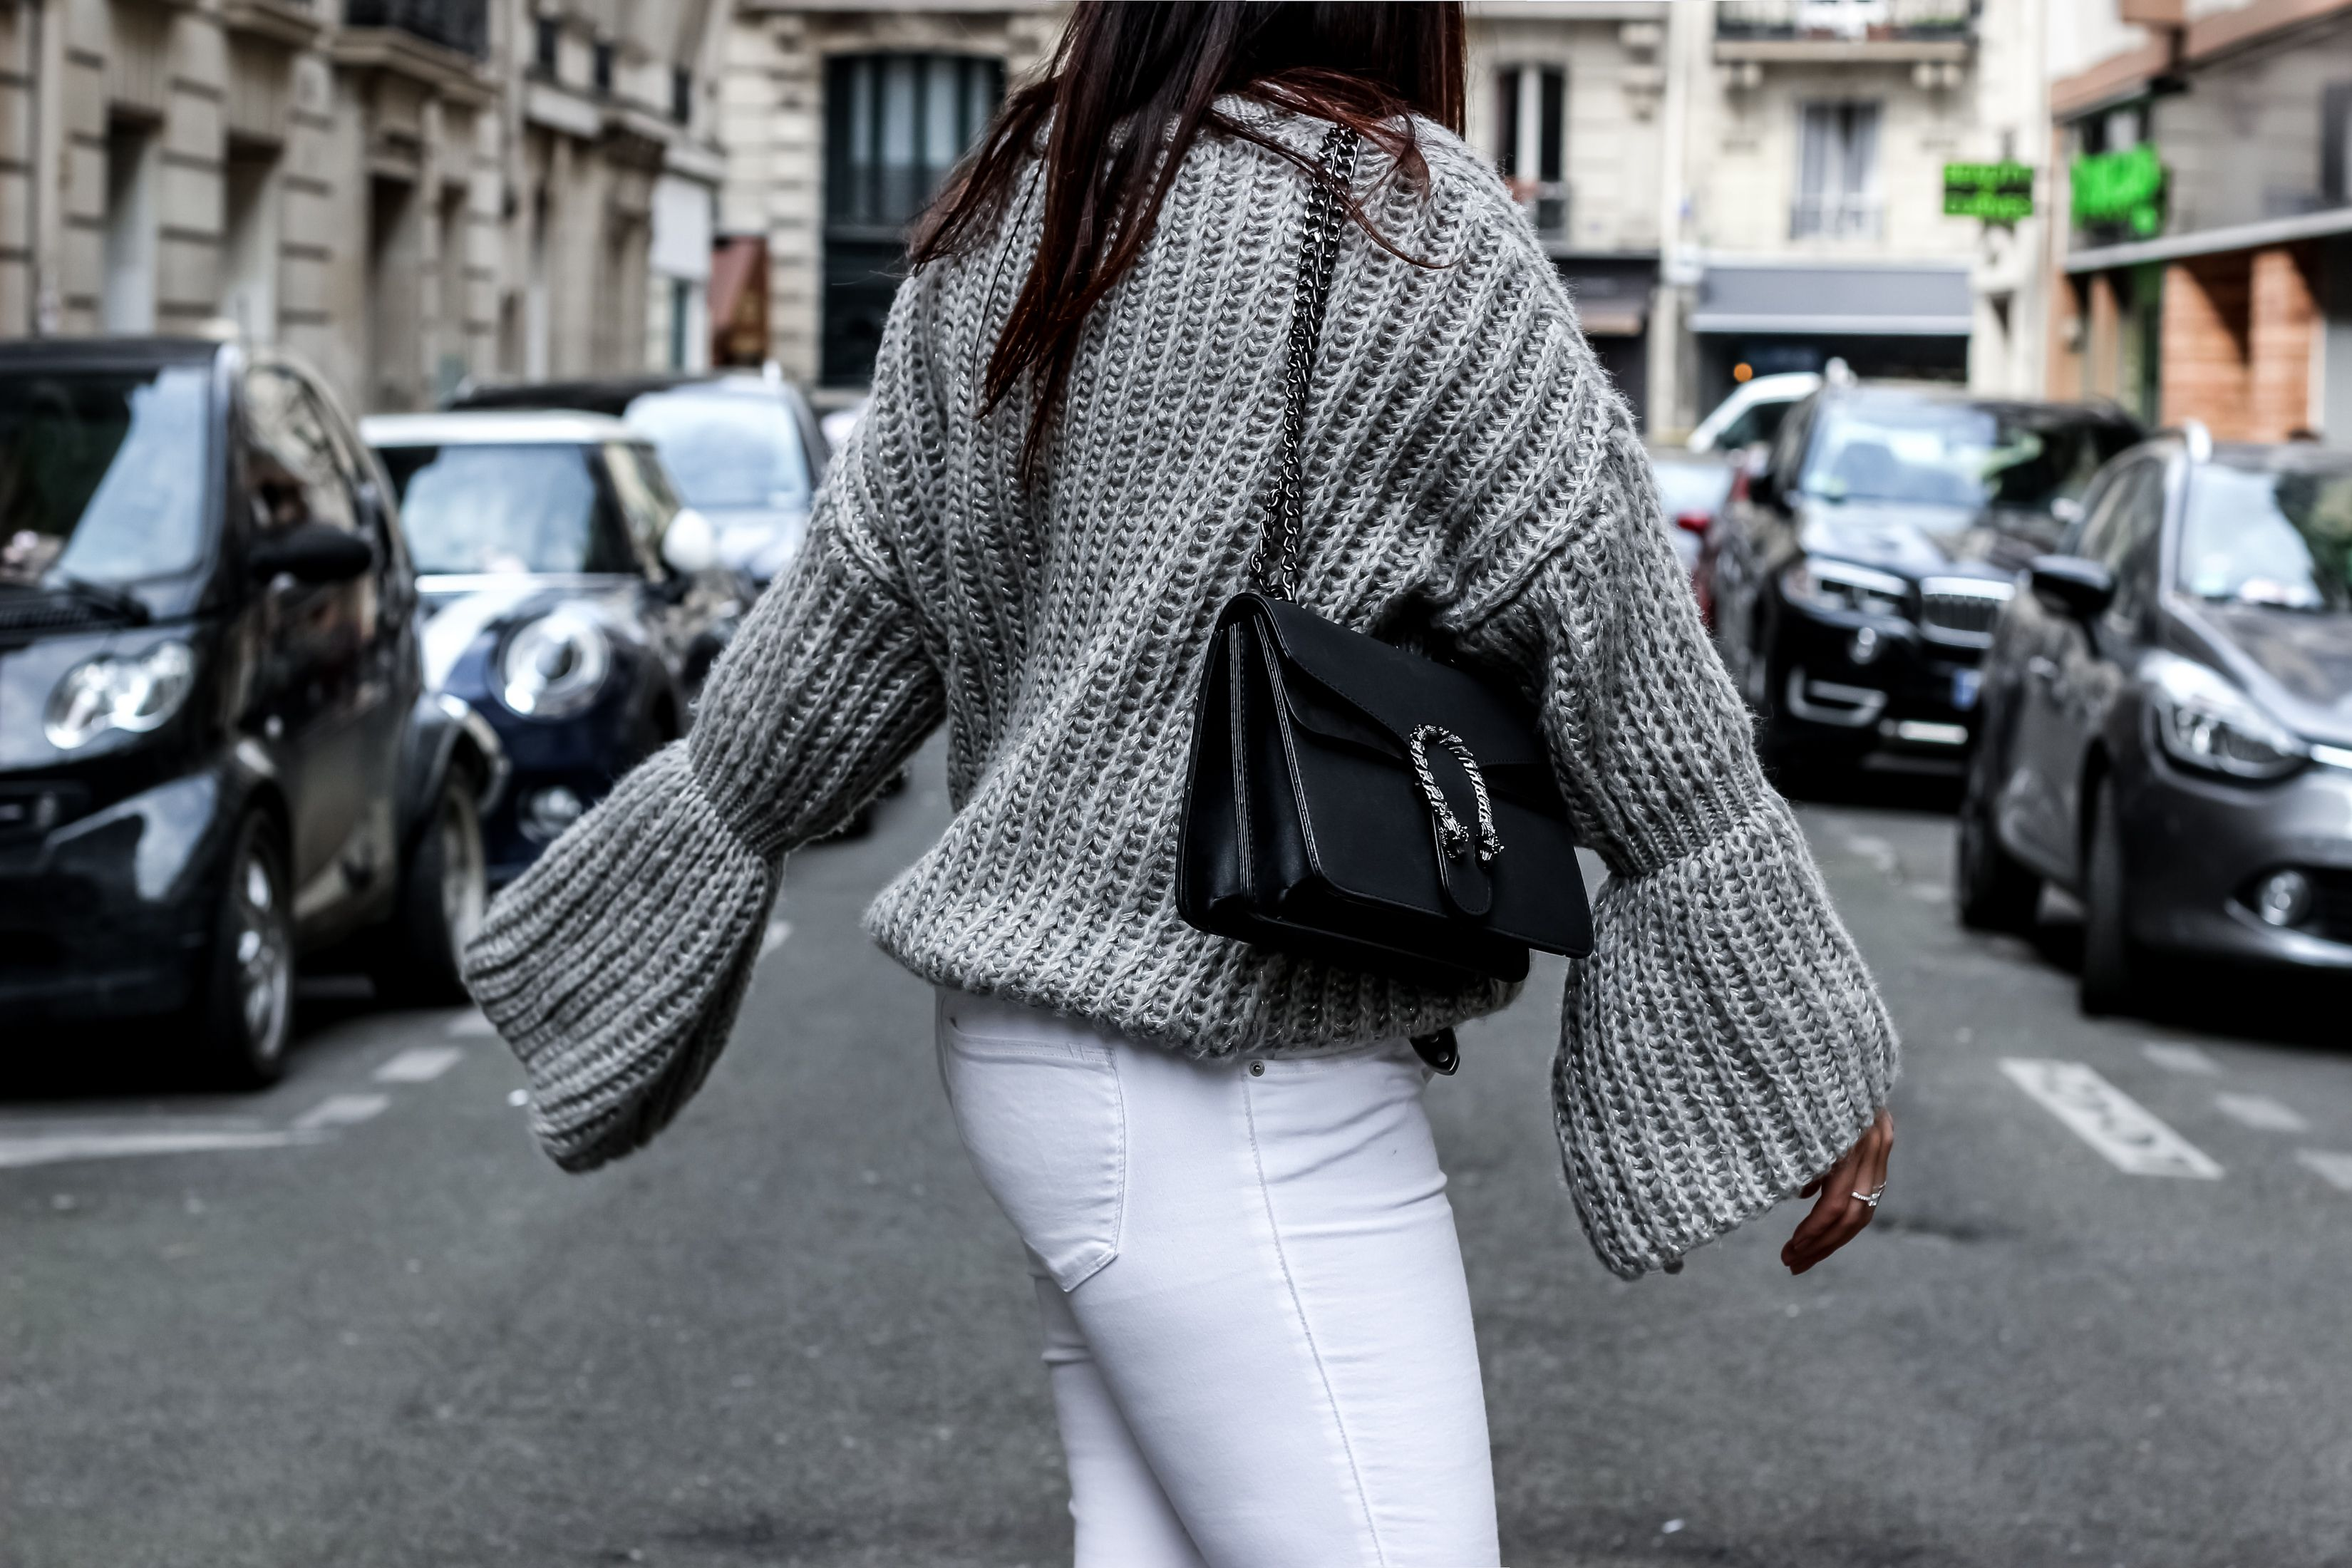 pull manches cloche, the green ananas, blog mode, sac inspiration gucci, guccii dionysus, shein, zara, pantalon blanc, elyse stella mccartney, pinterest, mode, spring